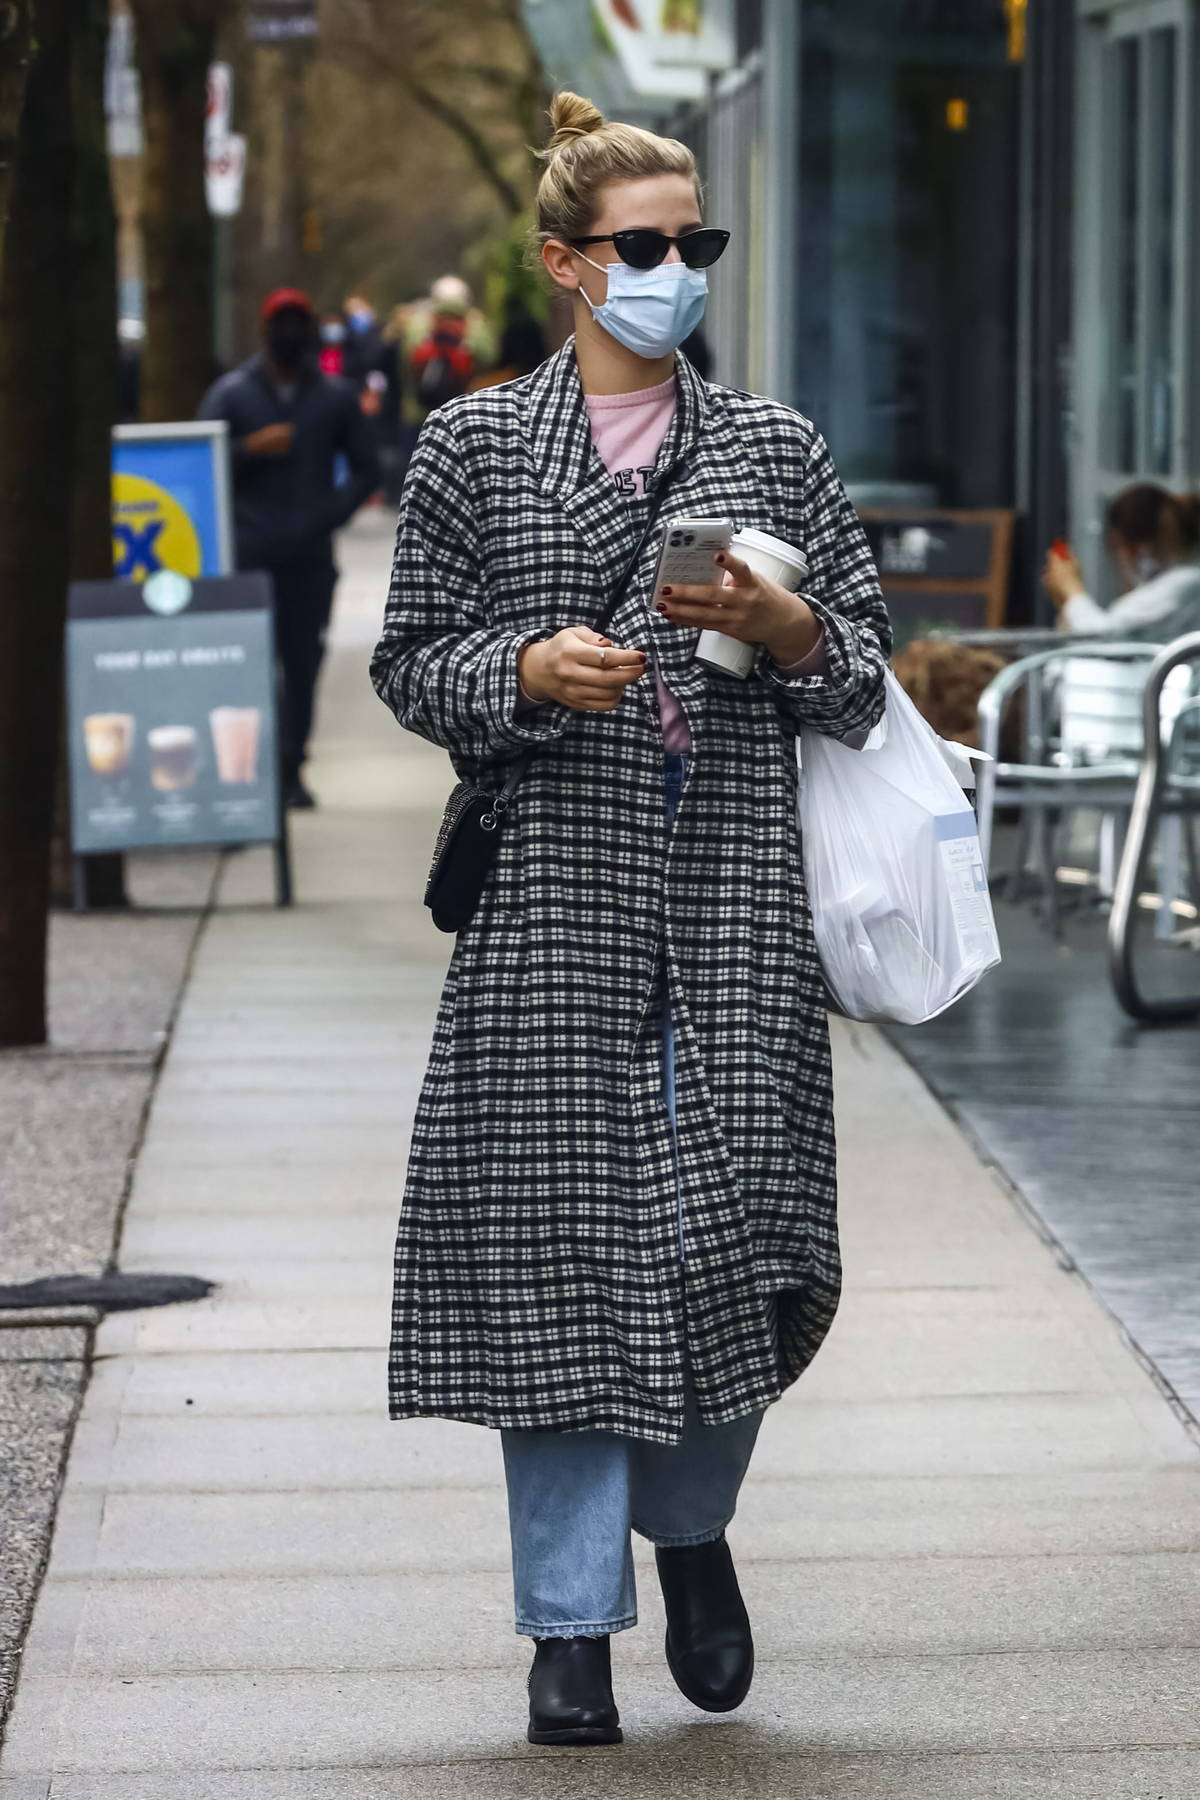 Lili Reinhart wears a black and white checkered coat as she as steps out on a coffee run in Vancouver, Canada